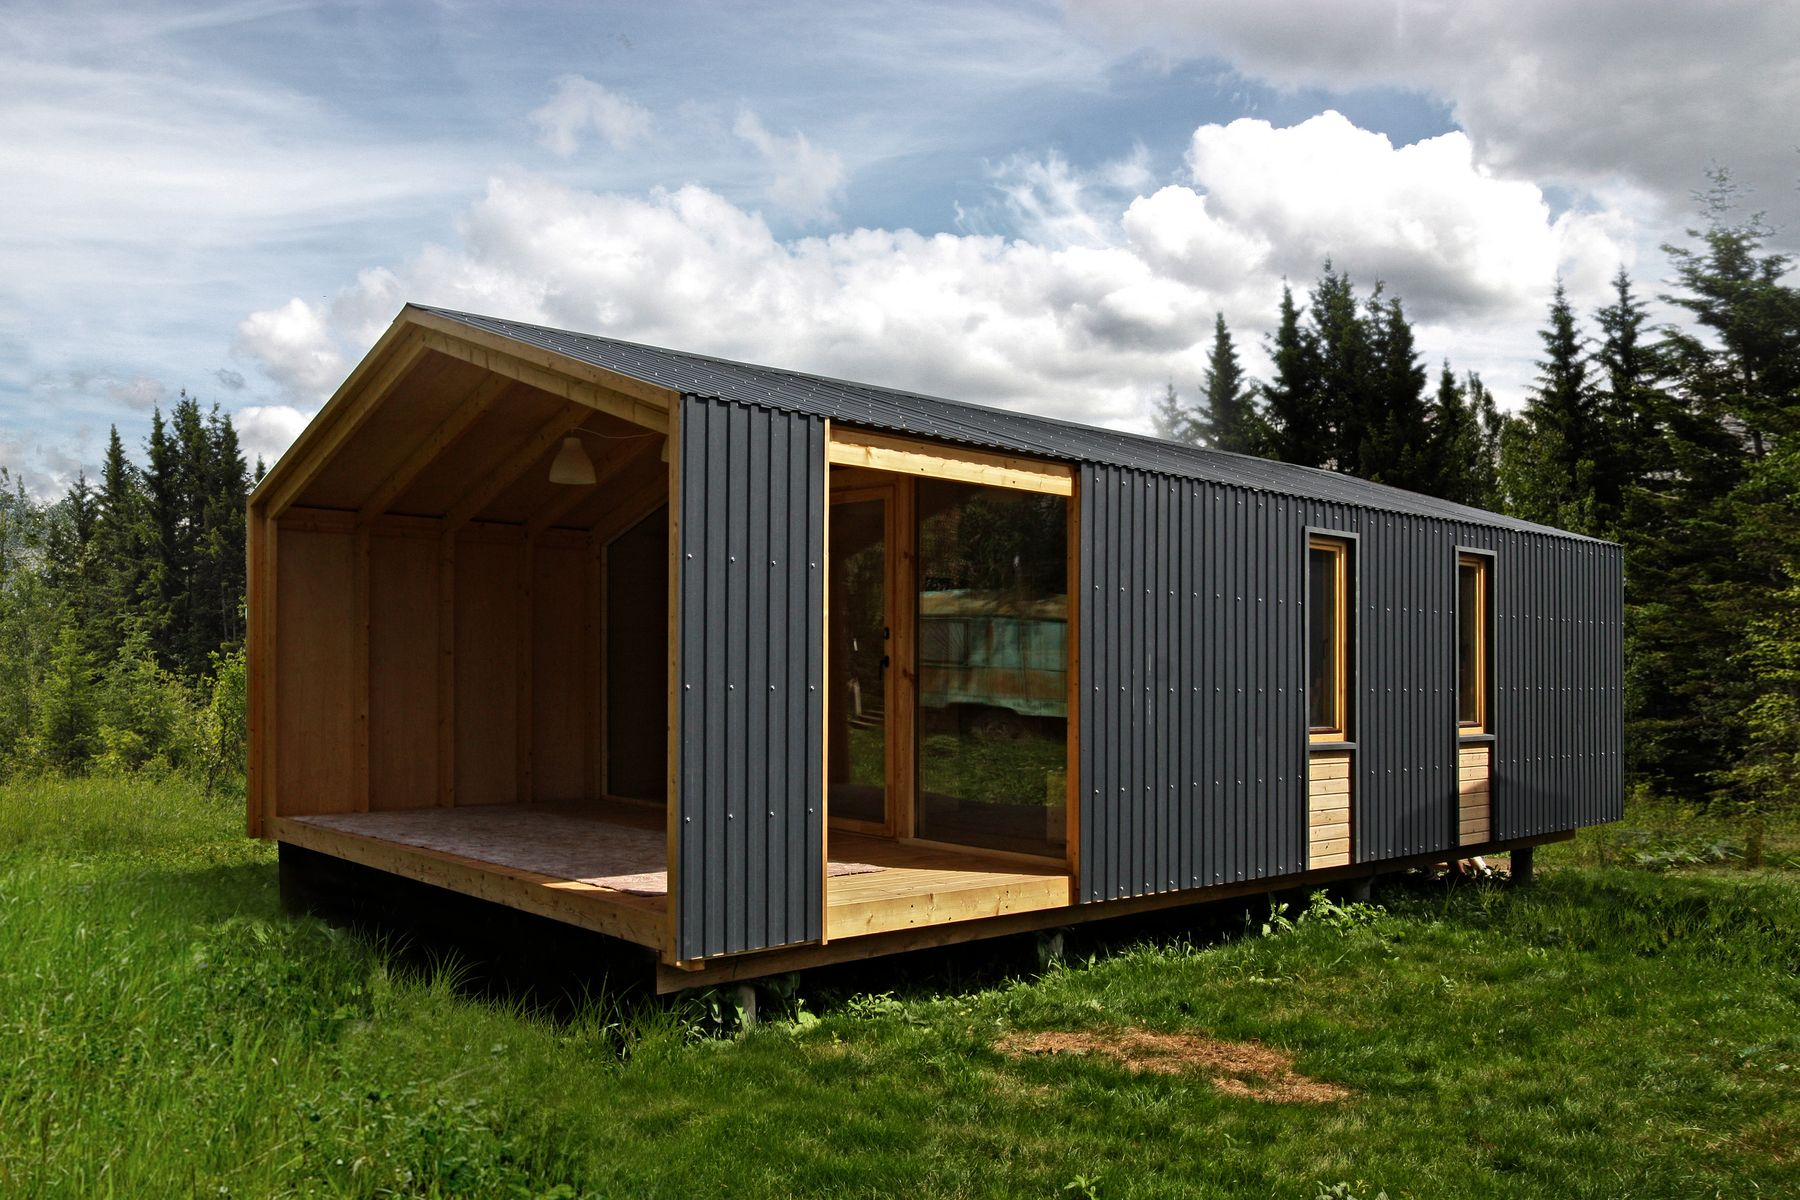 Plans For Cottages And Small Houses Gallery Dubldom A Modular Tiny House From Russia Bio